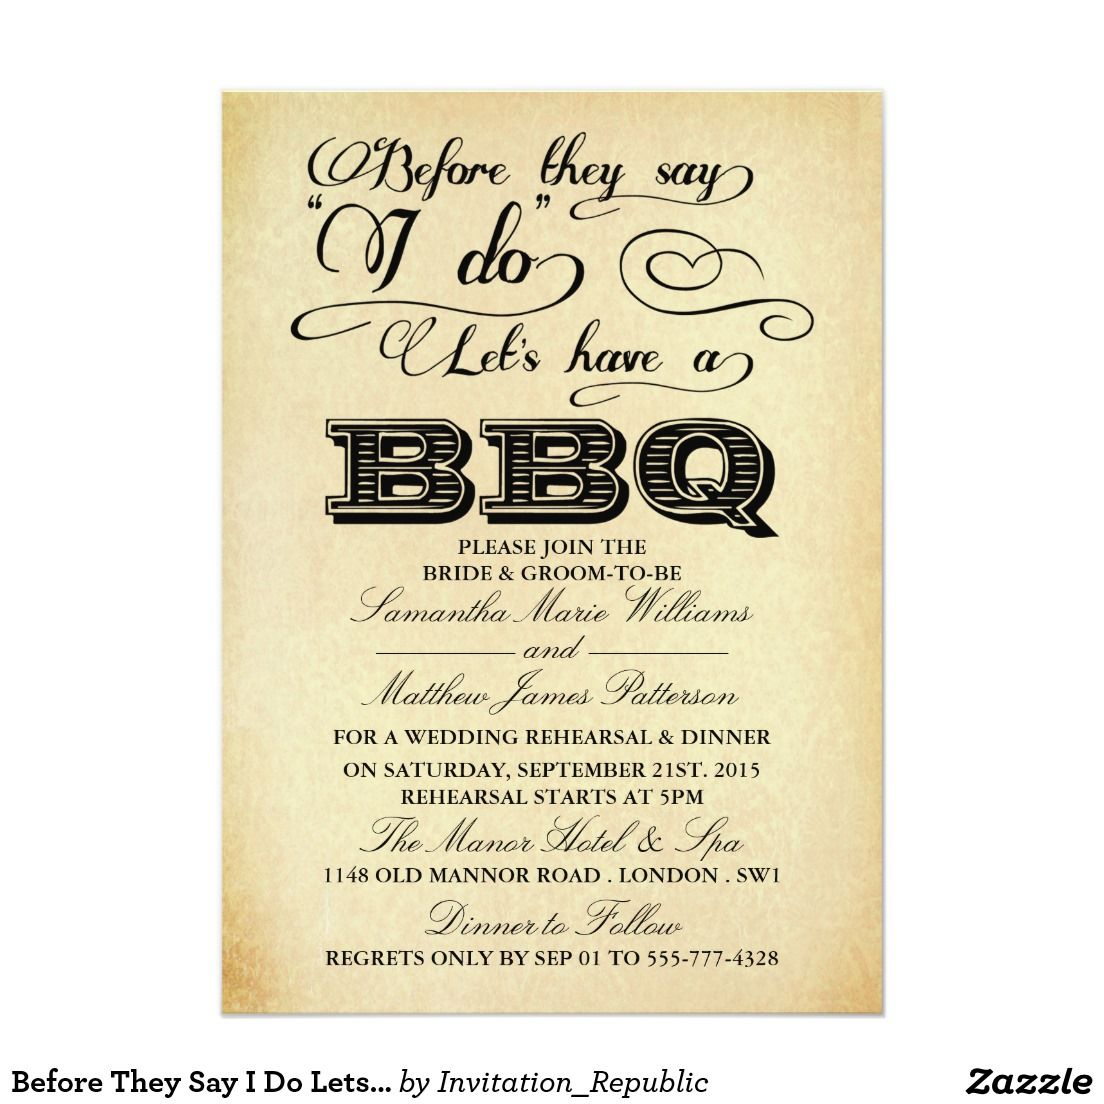 Before They Say I Do Lets Have A BBQ! - Vintage Card | Vintage cards ...